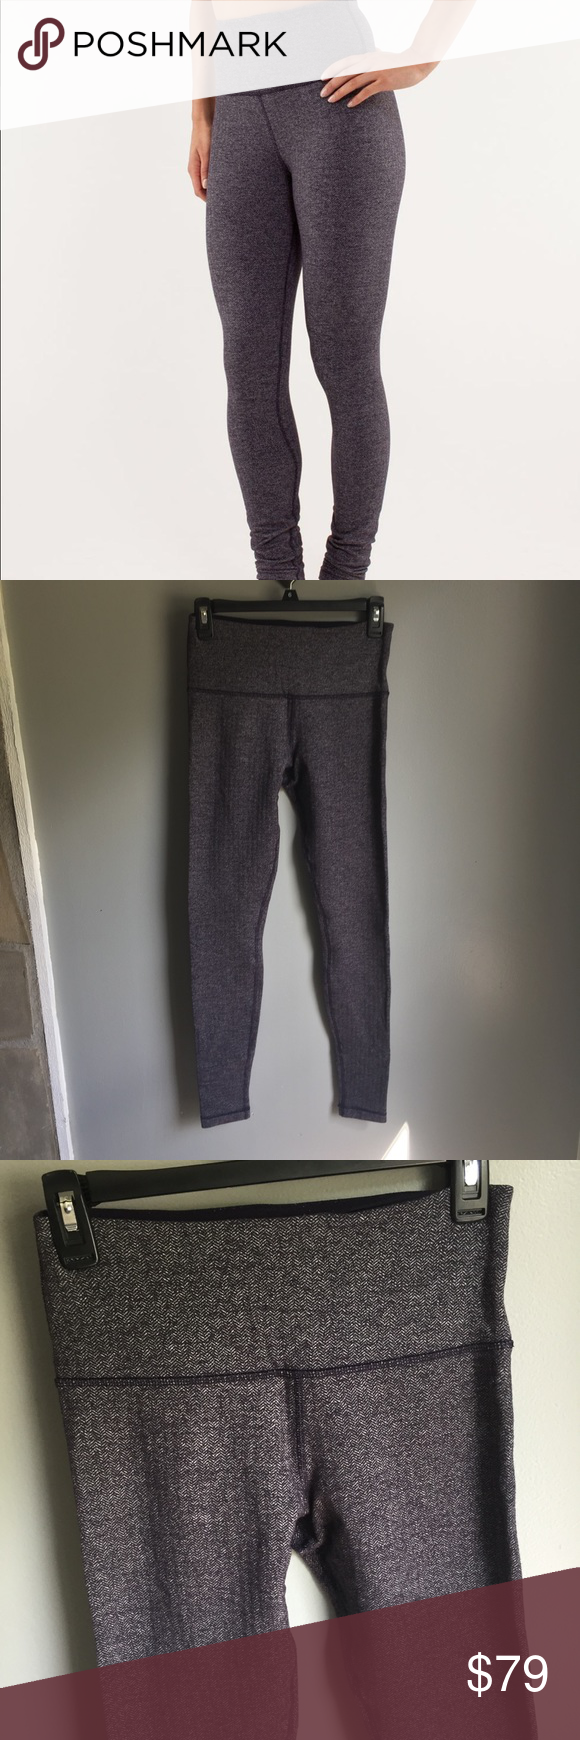 bf8a7c7c6 Lululemon Wunder Under Hi-Rise Black Swan RARE 6 Herringbone pattern high  rise Wunder under in a thicker plush fabric. Color is a navy almost black  with ...